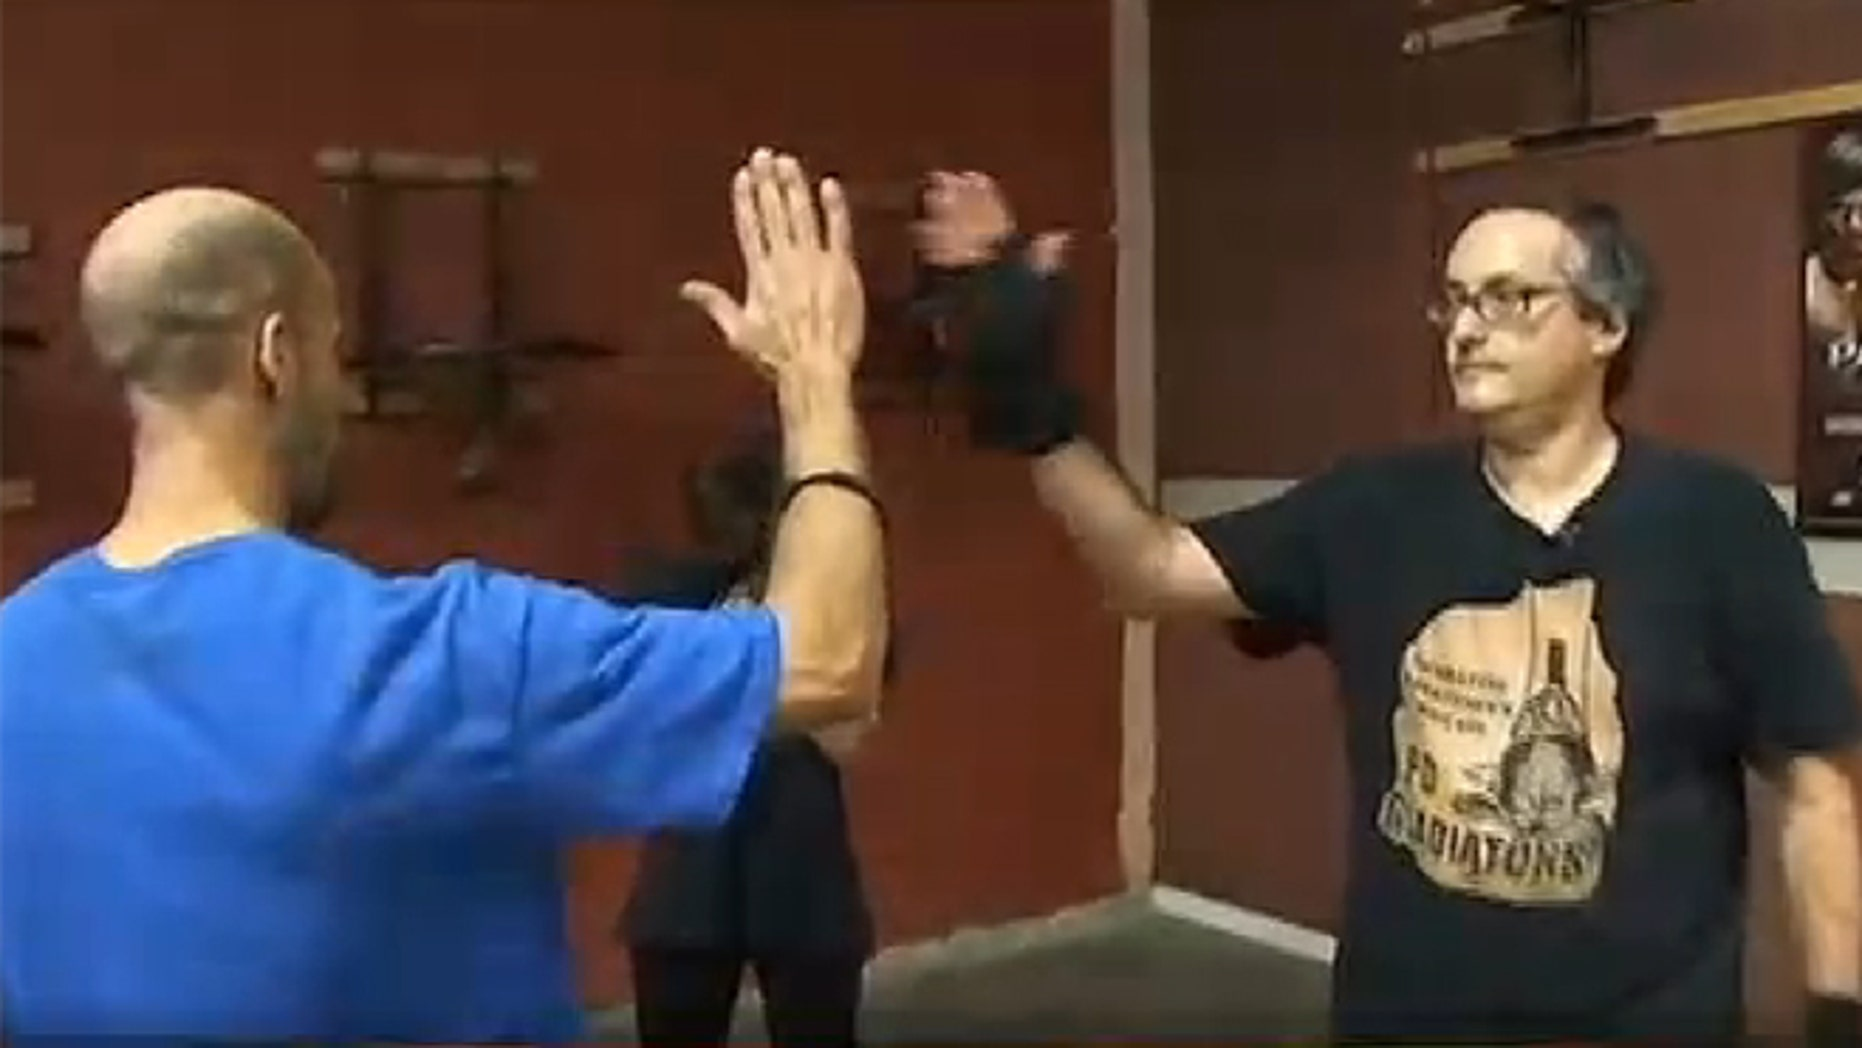 Larry Kahn high-fives his instructor after a boxing work out.